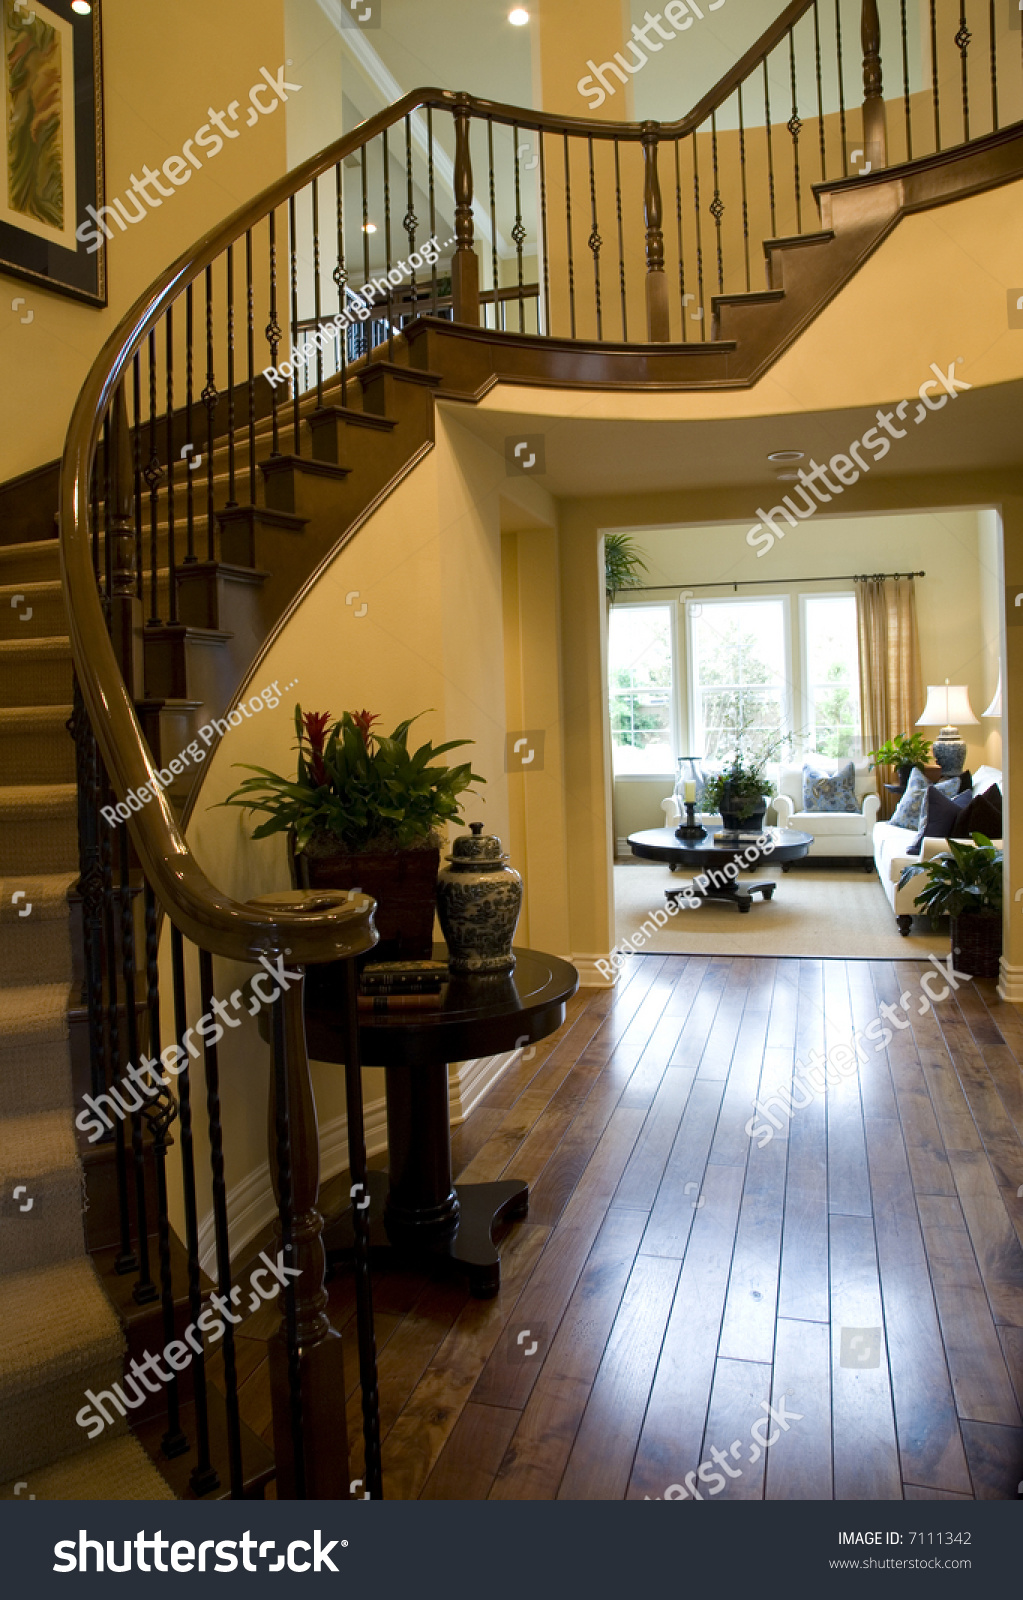 Attractive Mansion Hallway With Winding Staircase And Luxurious Decor.